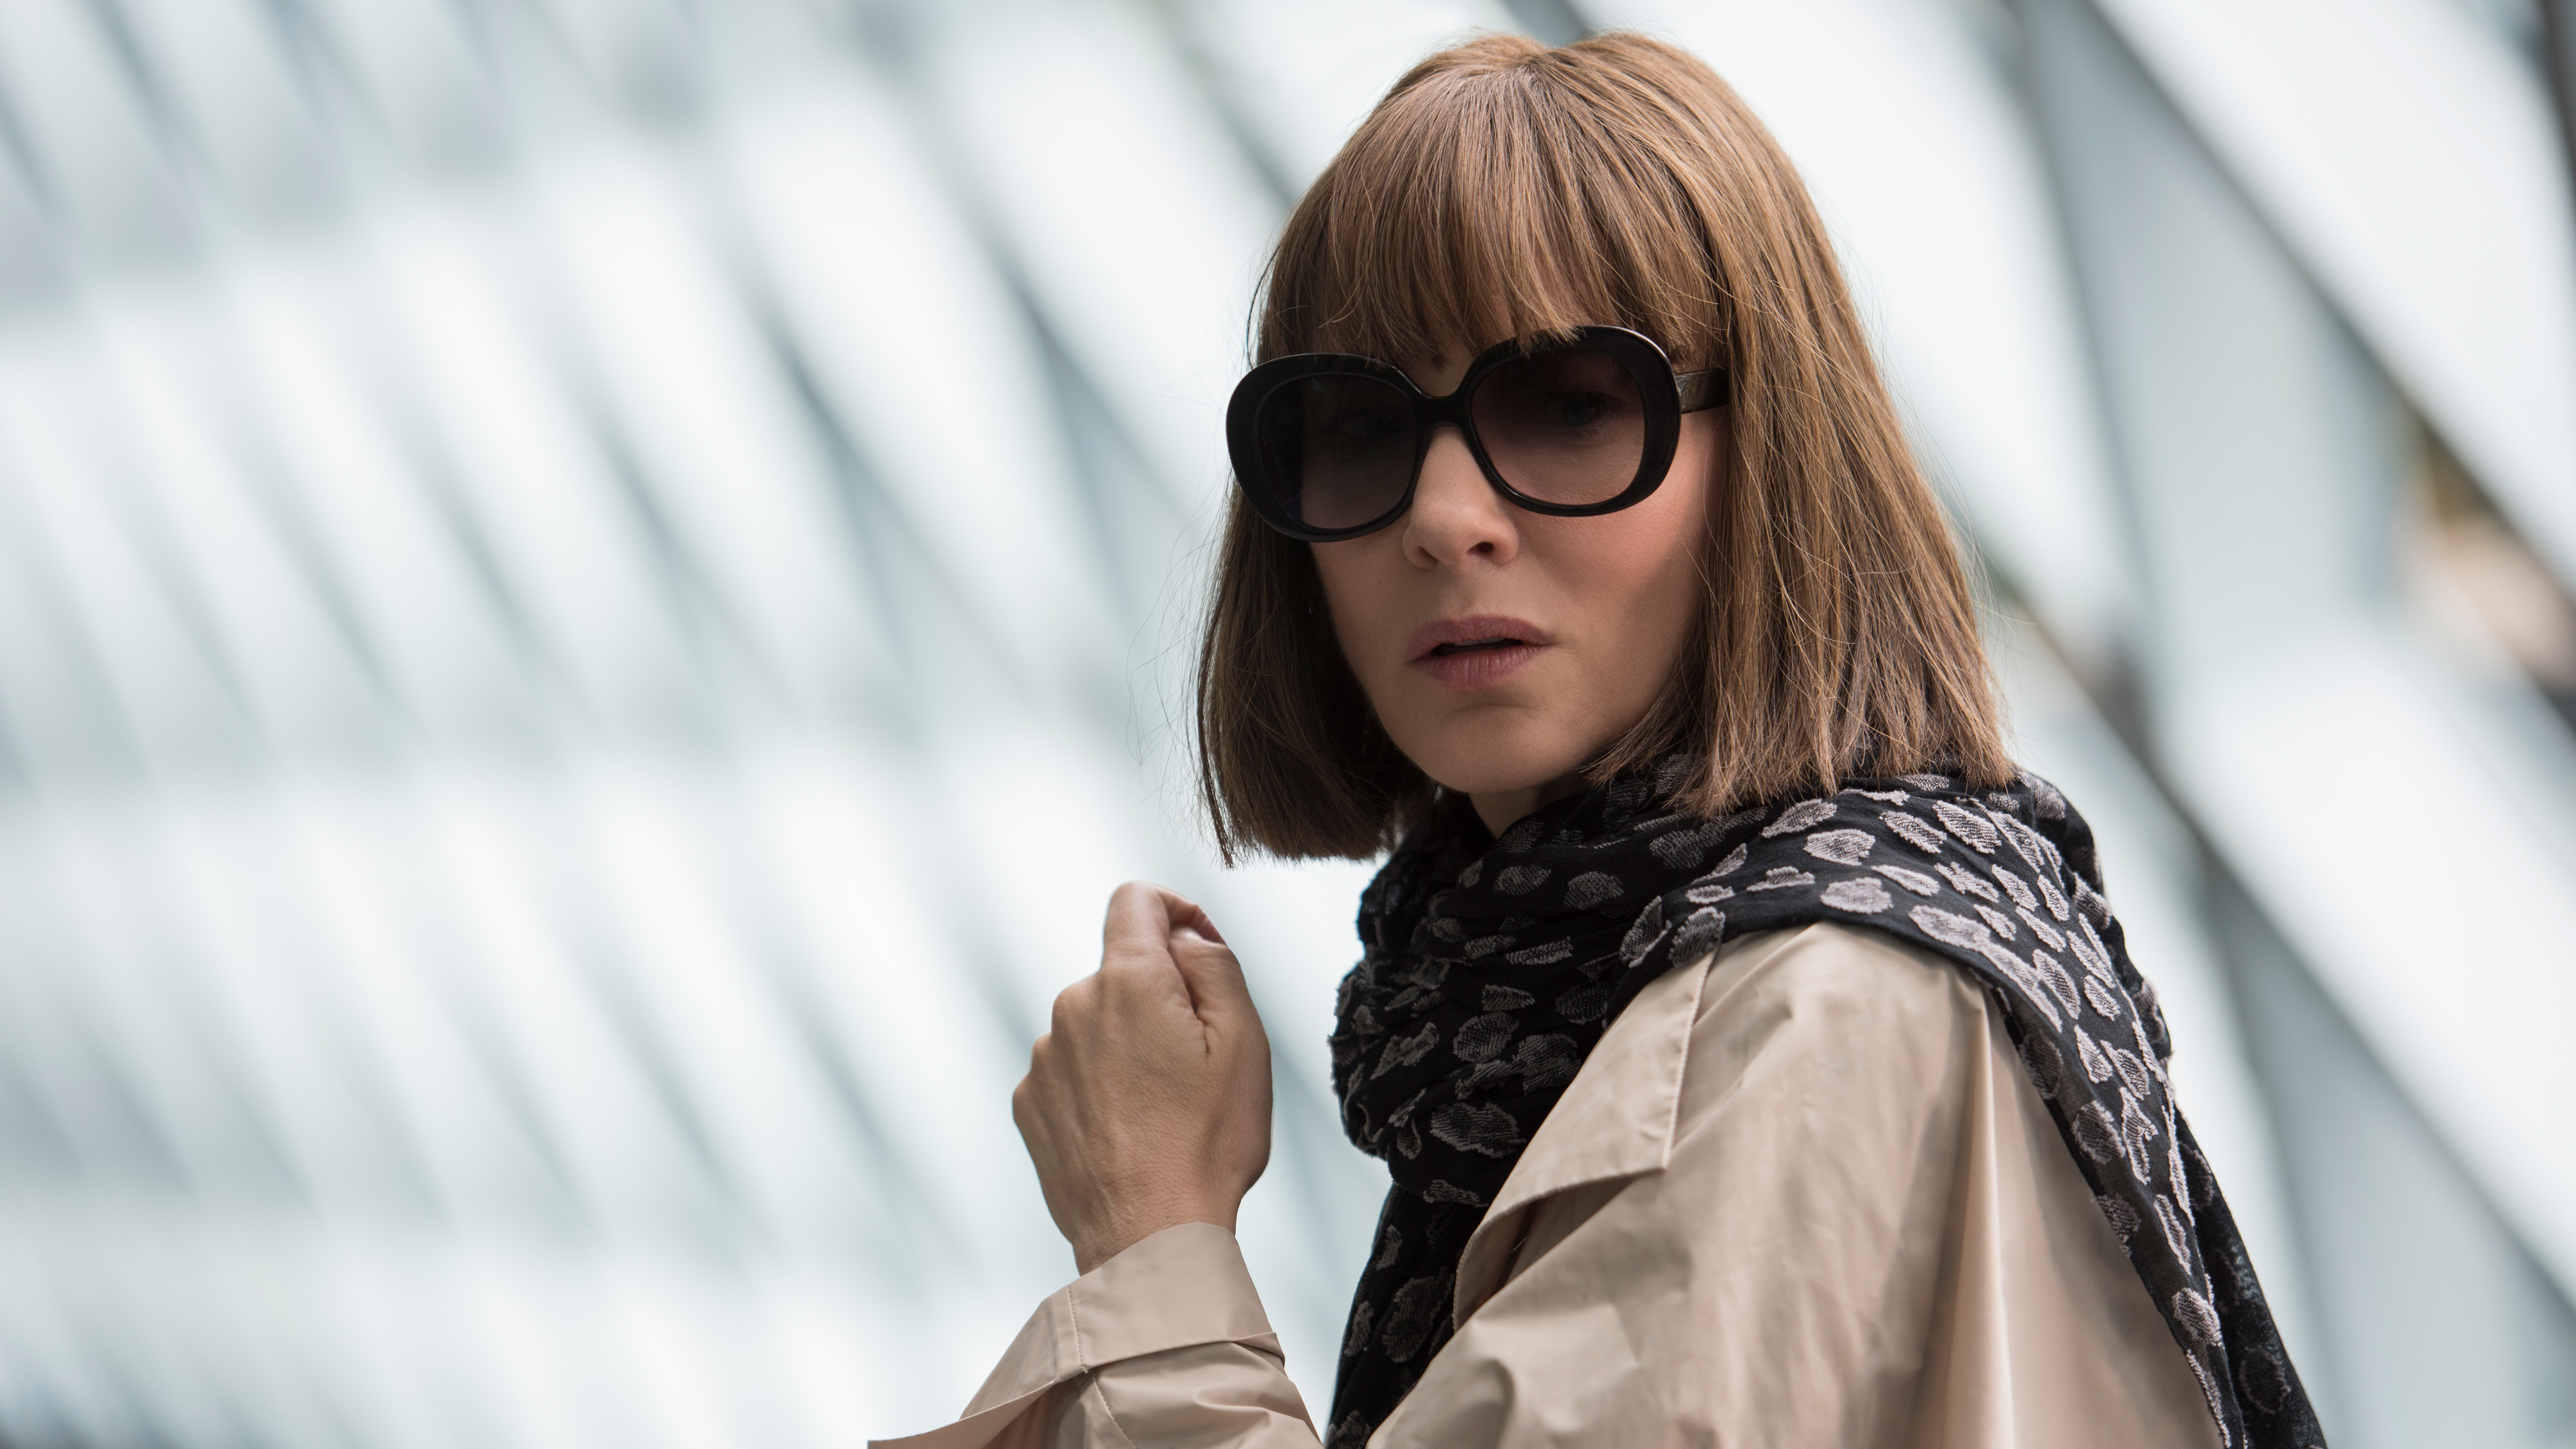 Cate Blanchett in Where'd You Go, Bernadette.